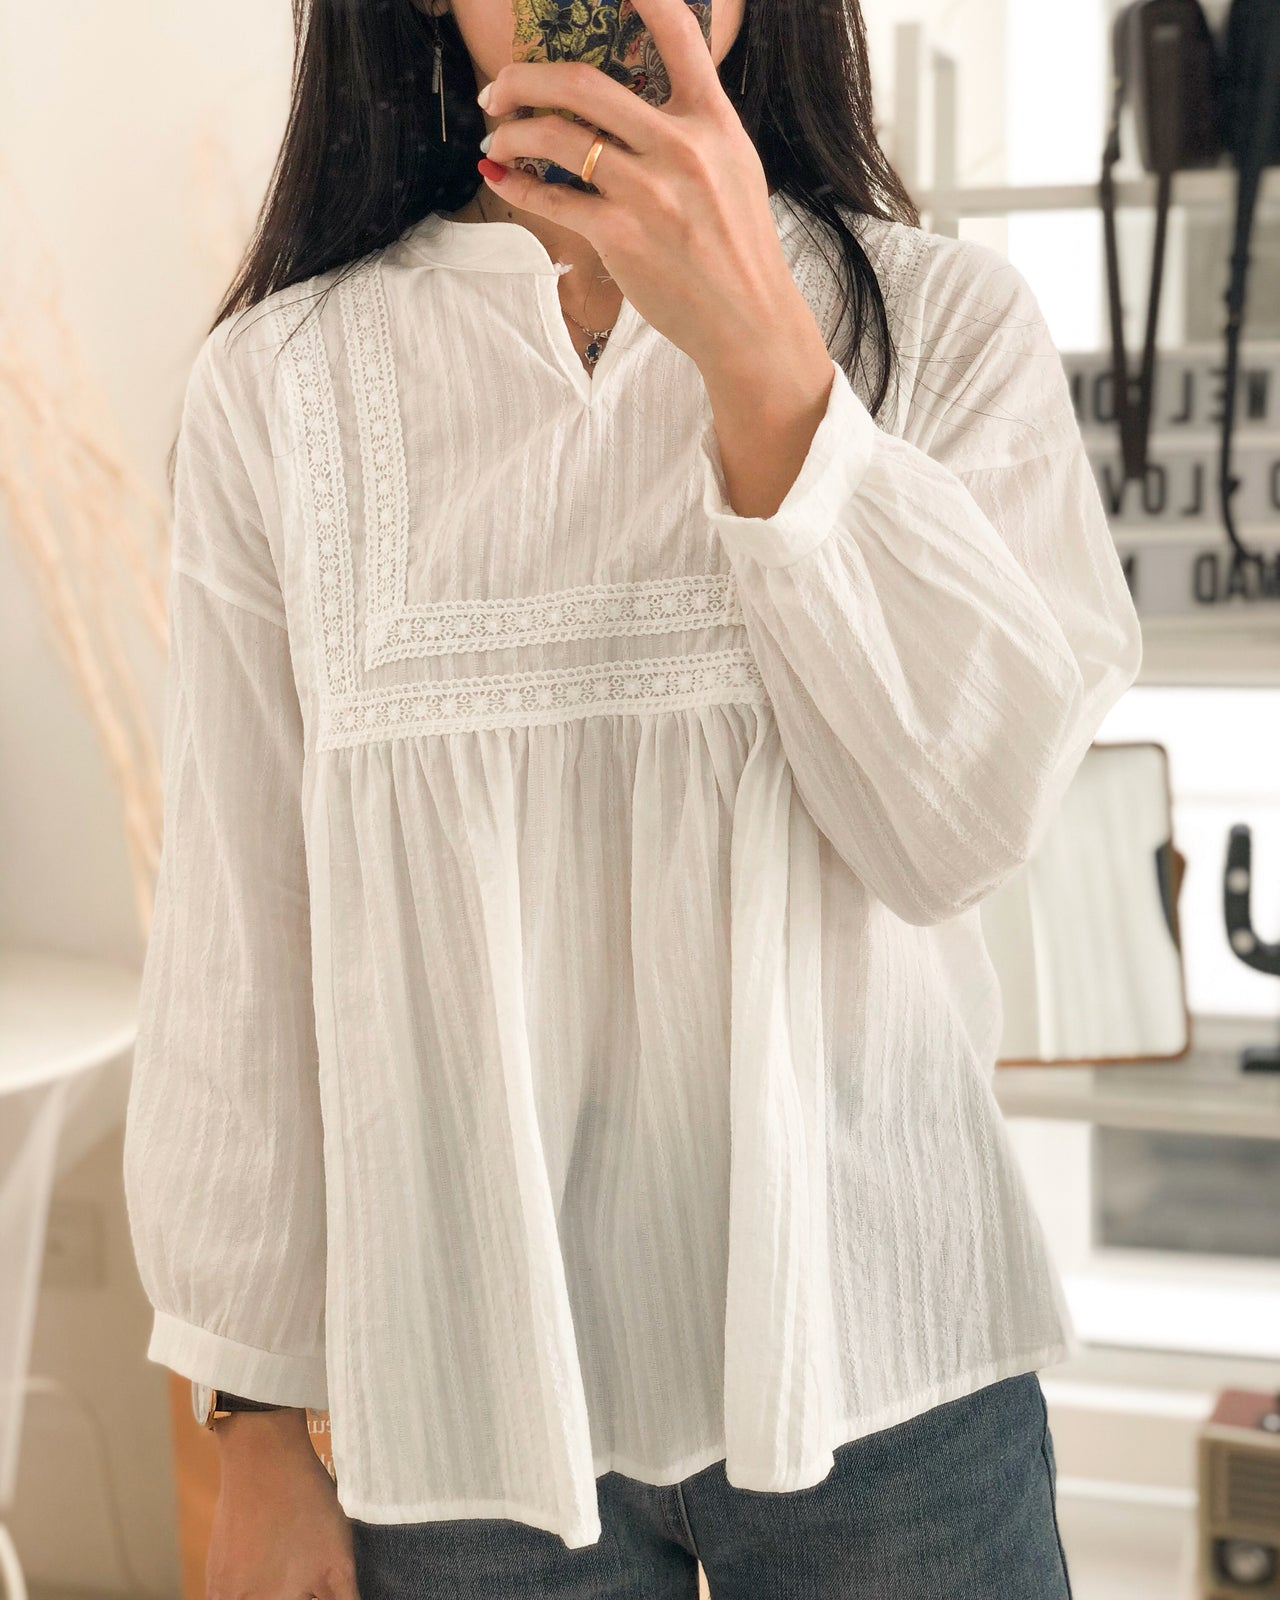 Noelle Crochet Blouse - LovelyMadness Clothing Online Fashion Malaysia